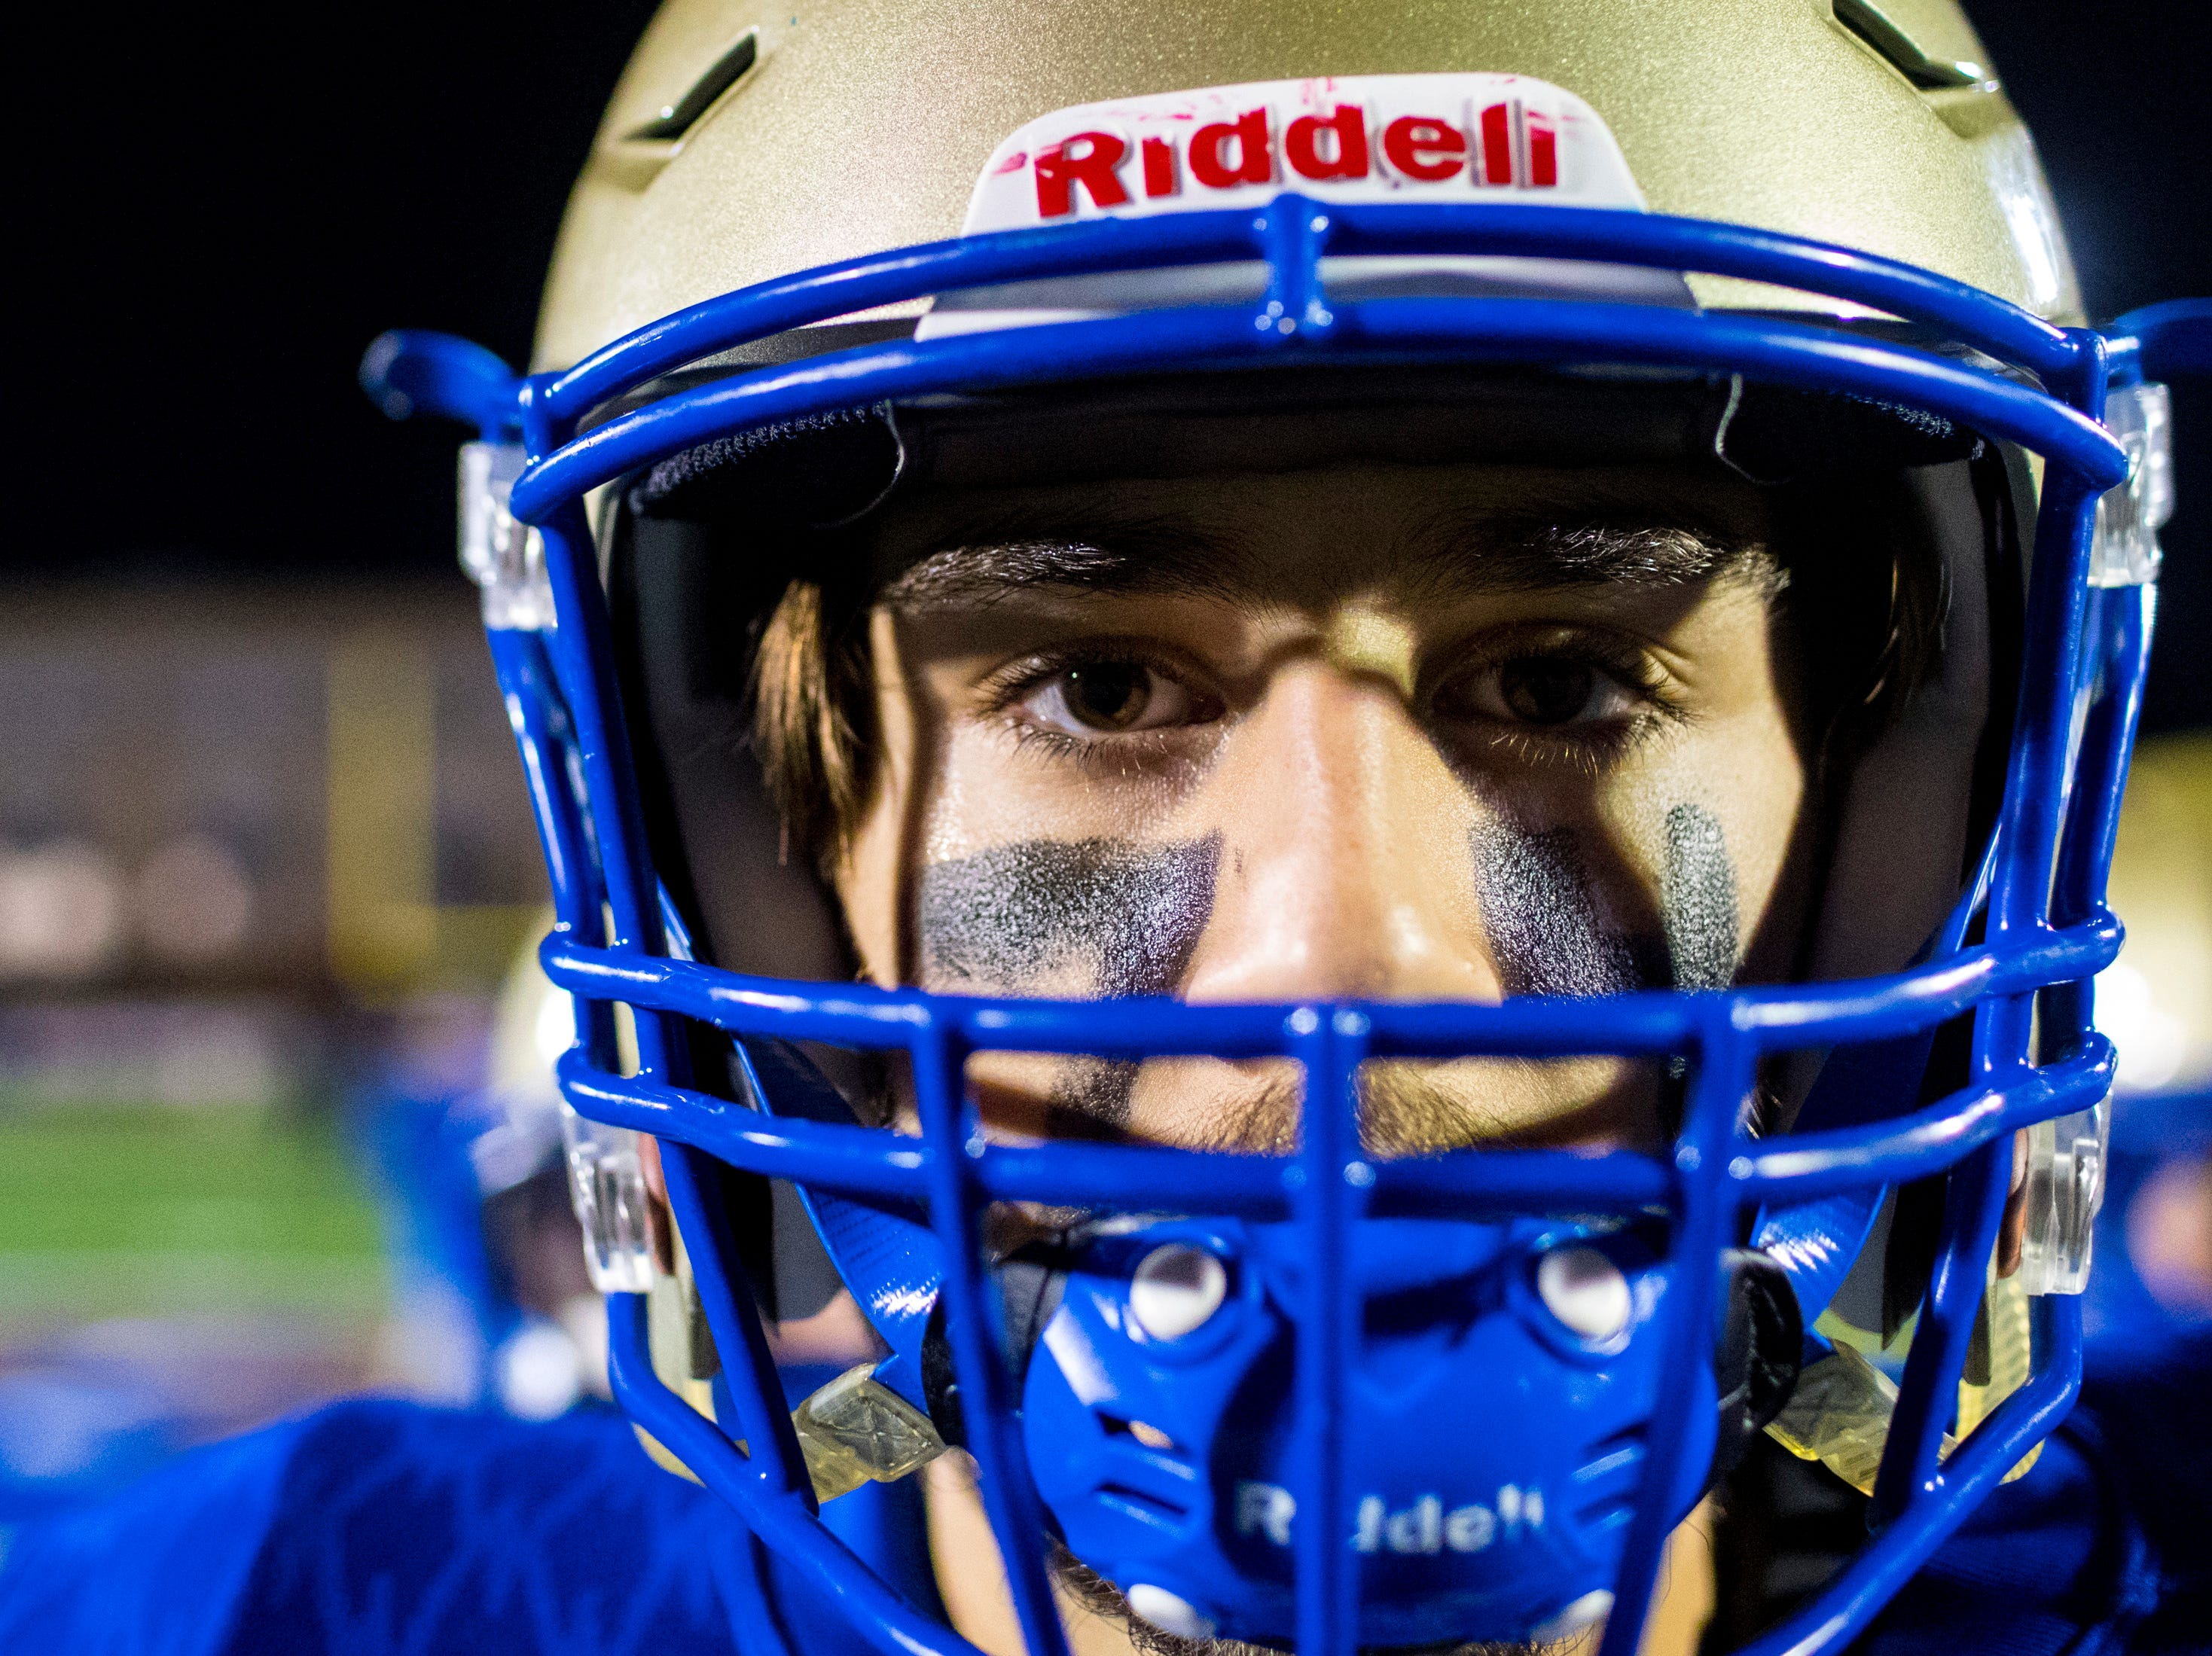 Brentwood's Ben Brannon (84) has the number 74 on his face in face paint before Brentwood's game against Ravenwood at Brentwood High School in Brentwood on Friday, Nov. 16, 2018.